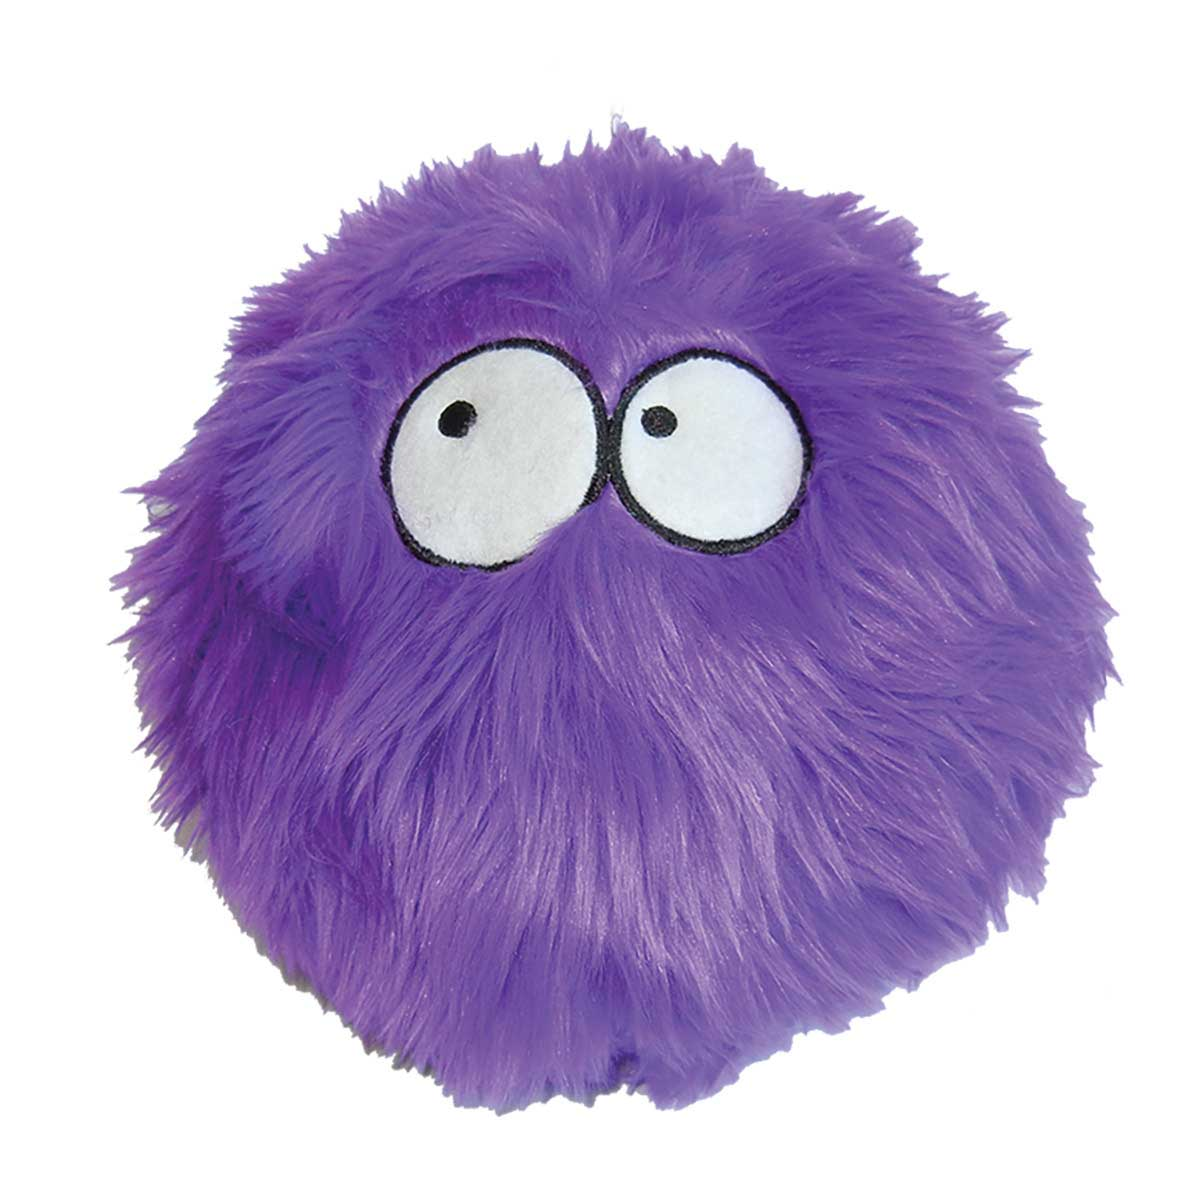 goDog Large Toy for Dogs Purple Furballz 8 inch